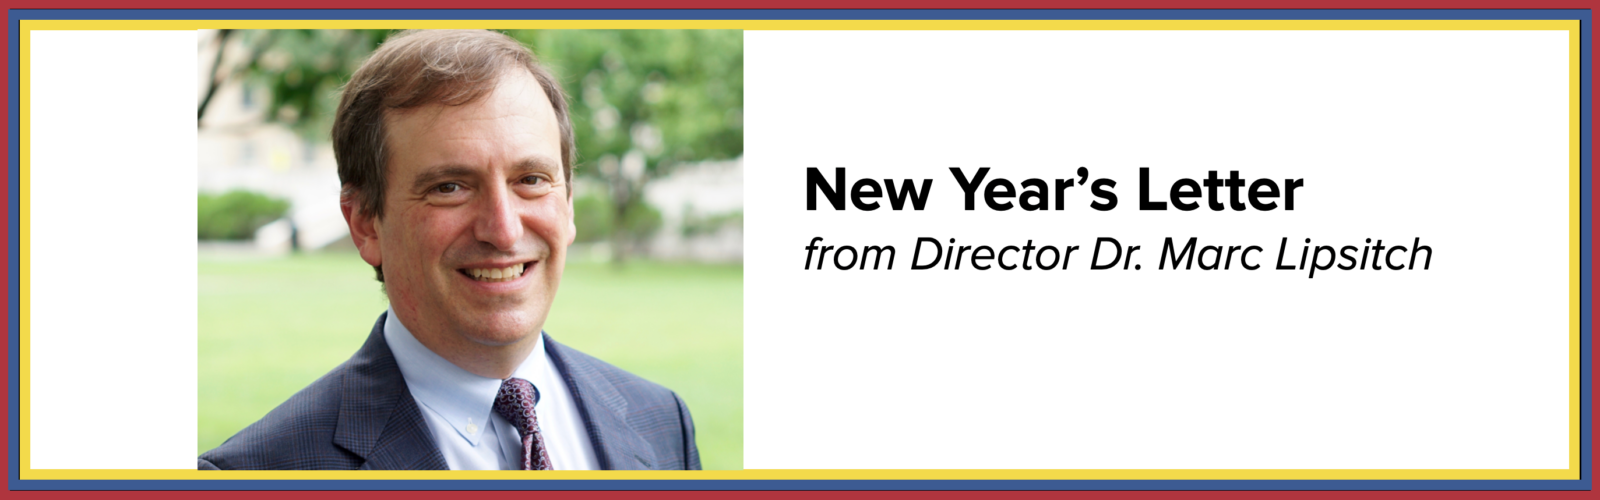 New Year's Letter from Director Dr. Marc Lipsitch